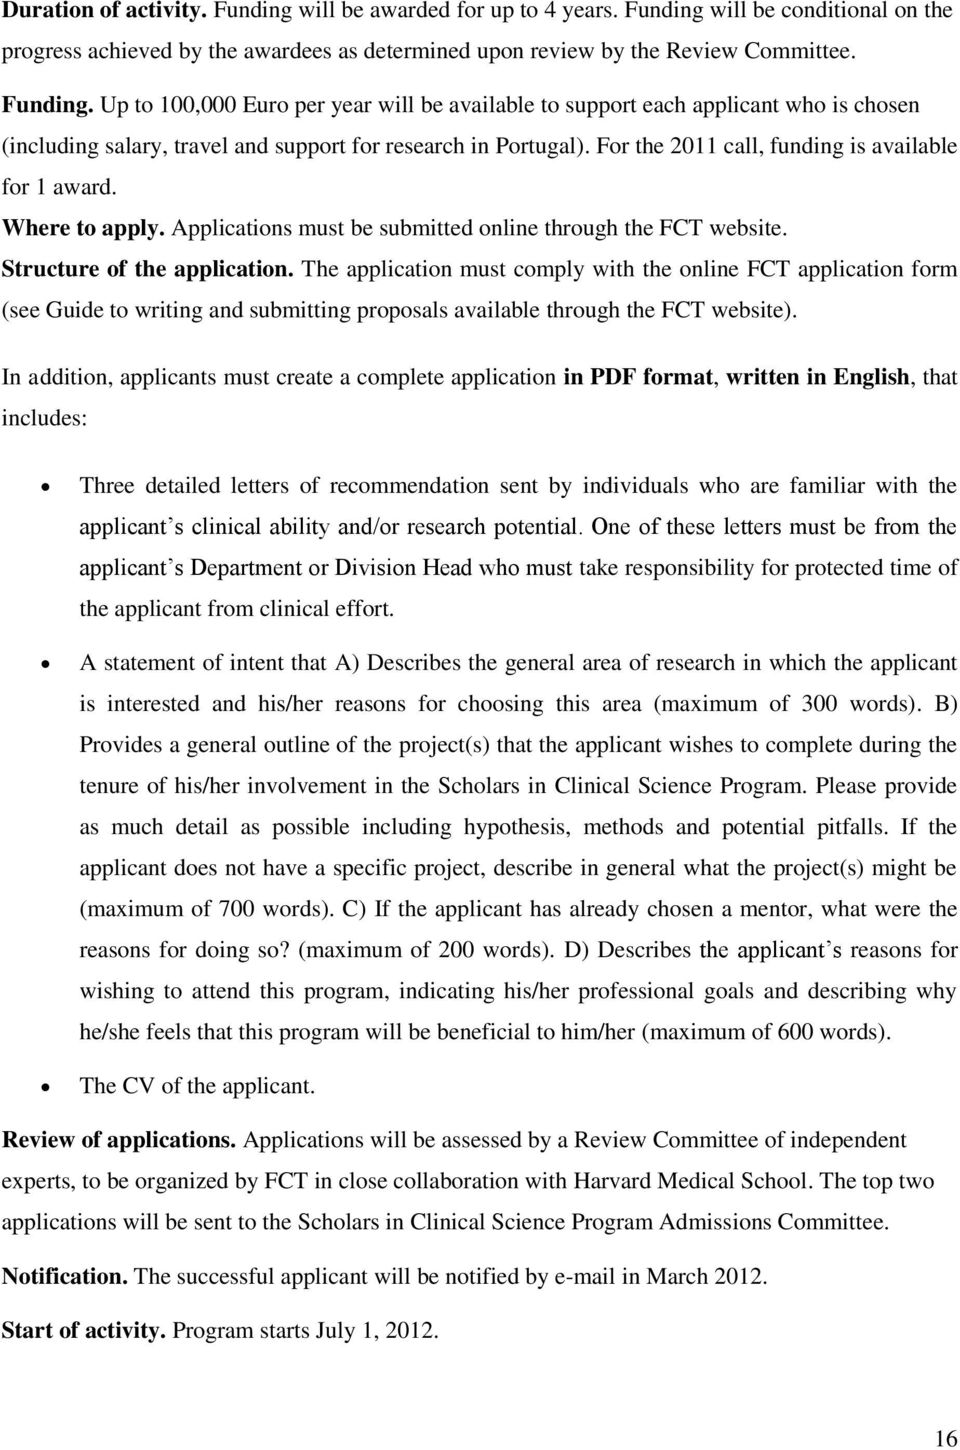 the application must comply with the online fct application form see guide to writing and